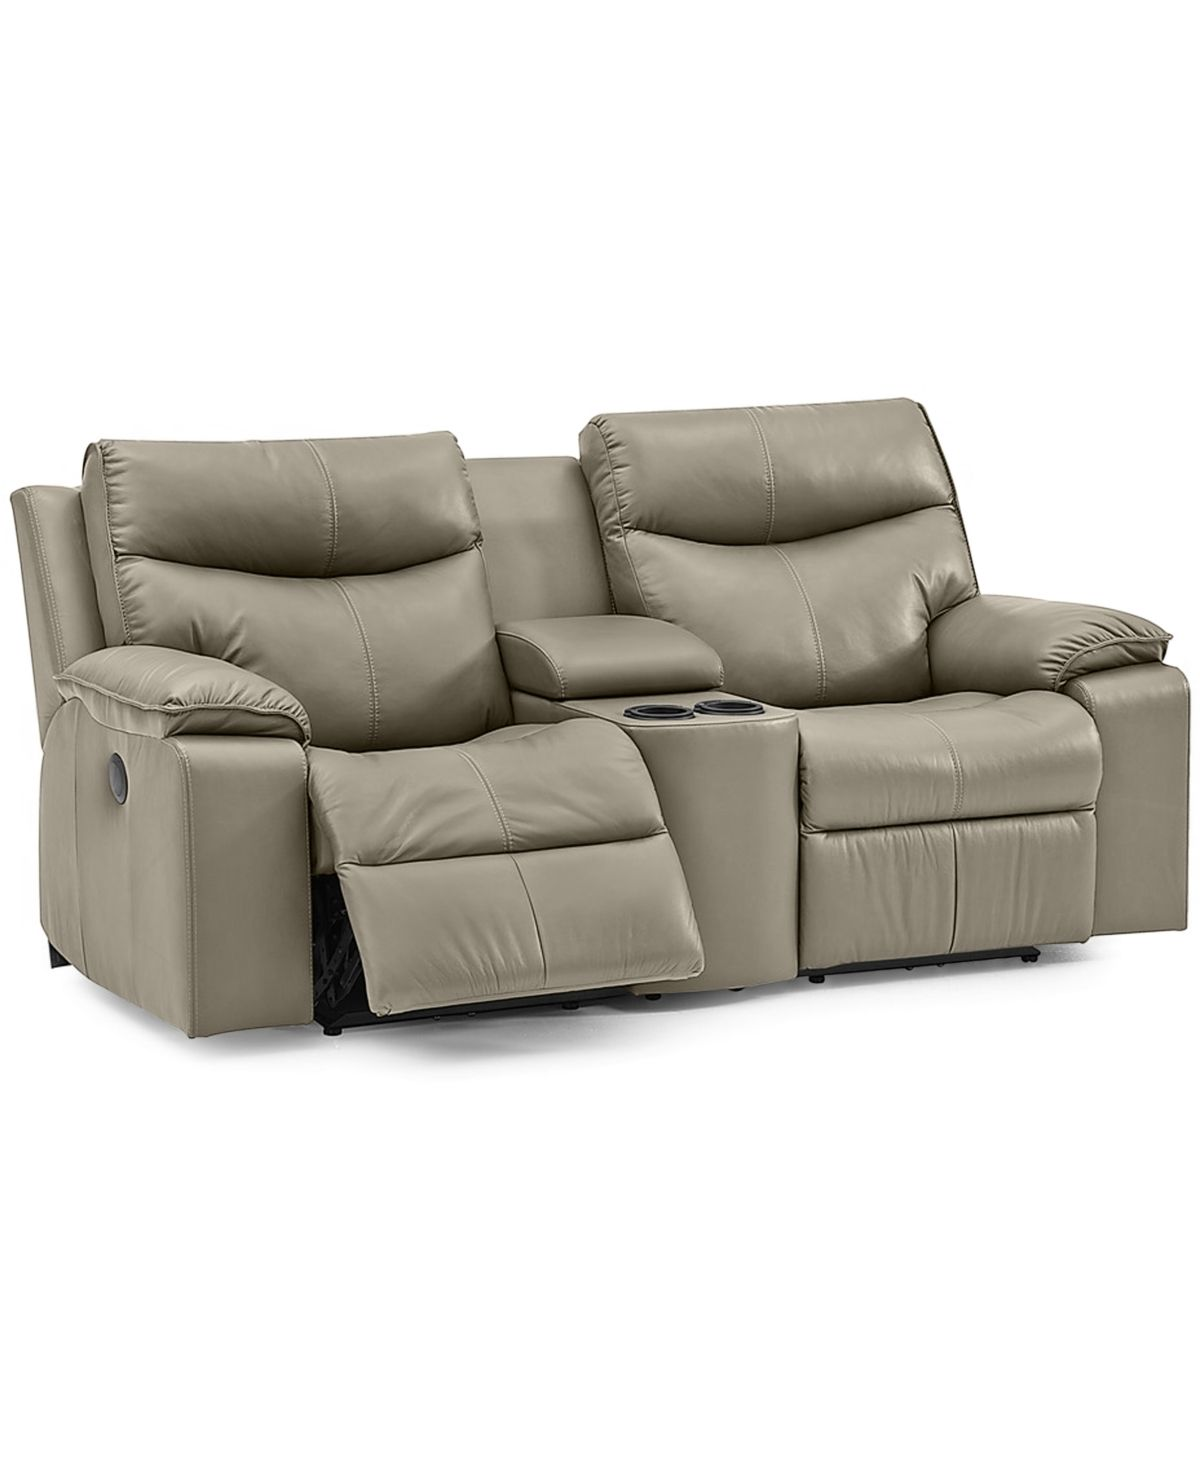 Furniture Ronse 77 Leather Power Recliner Loveseat With Console Reviews Custom Couches Sofas Furniture Macy S Power Recliners Custom Couches Love Seat